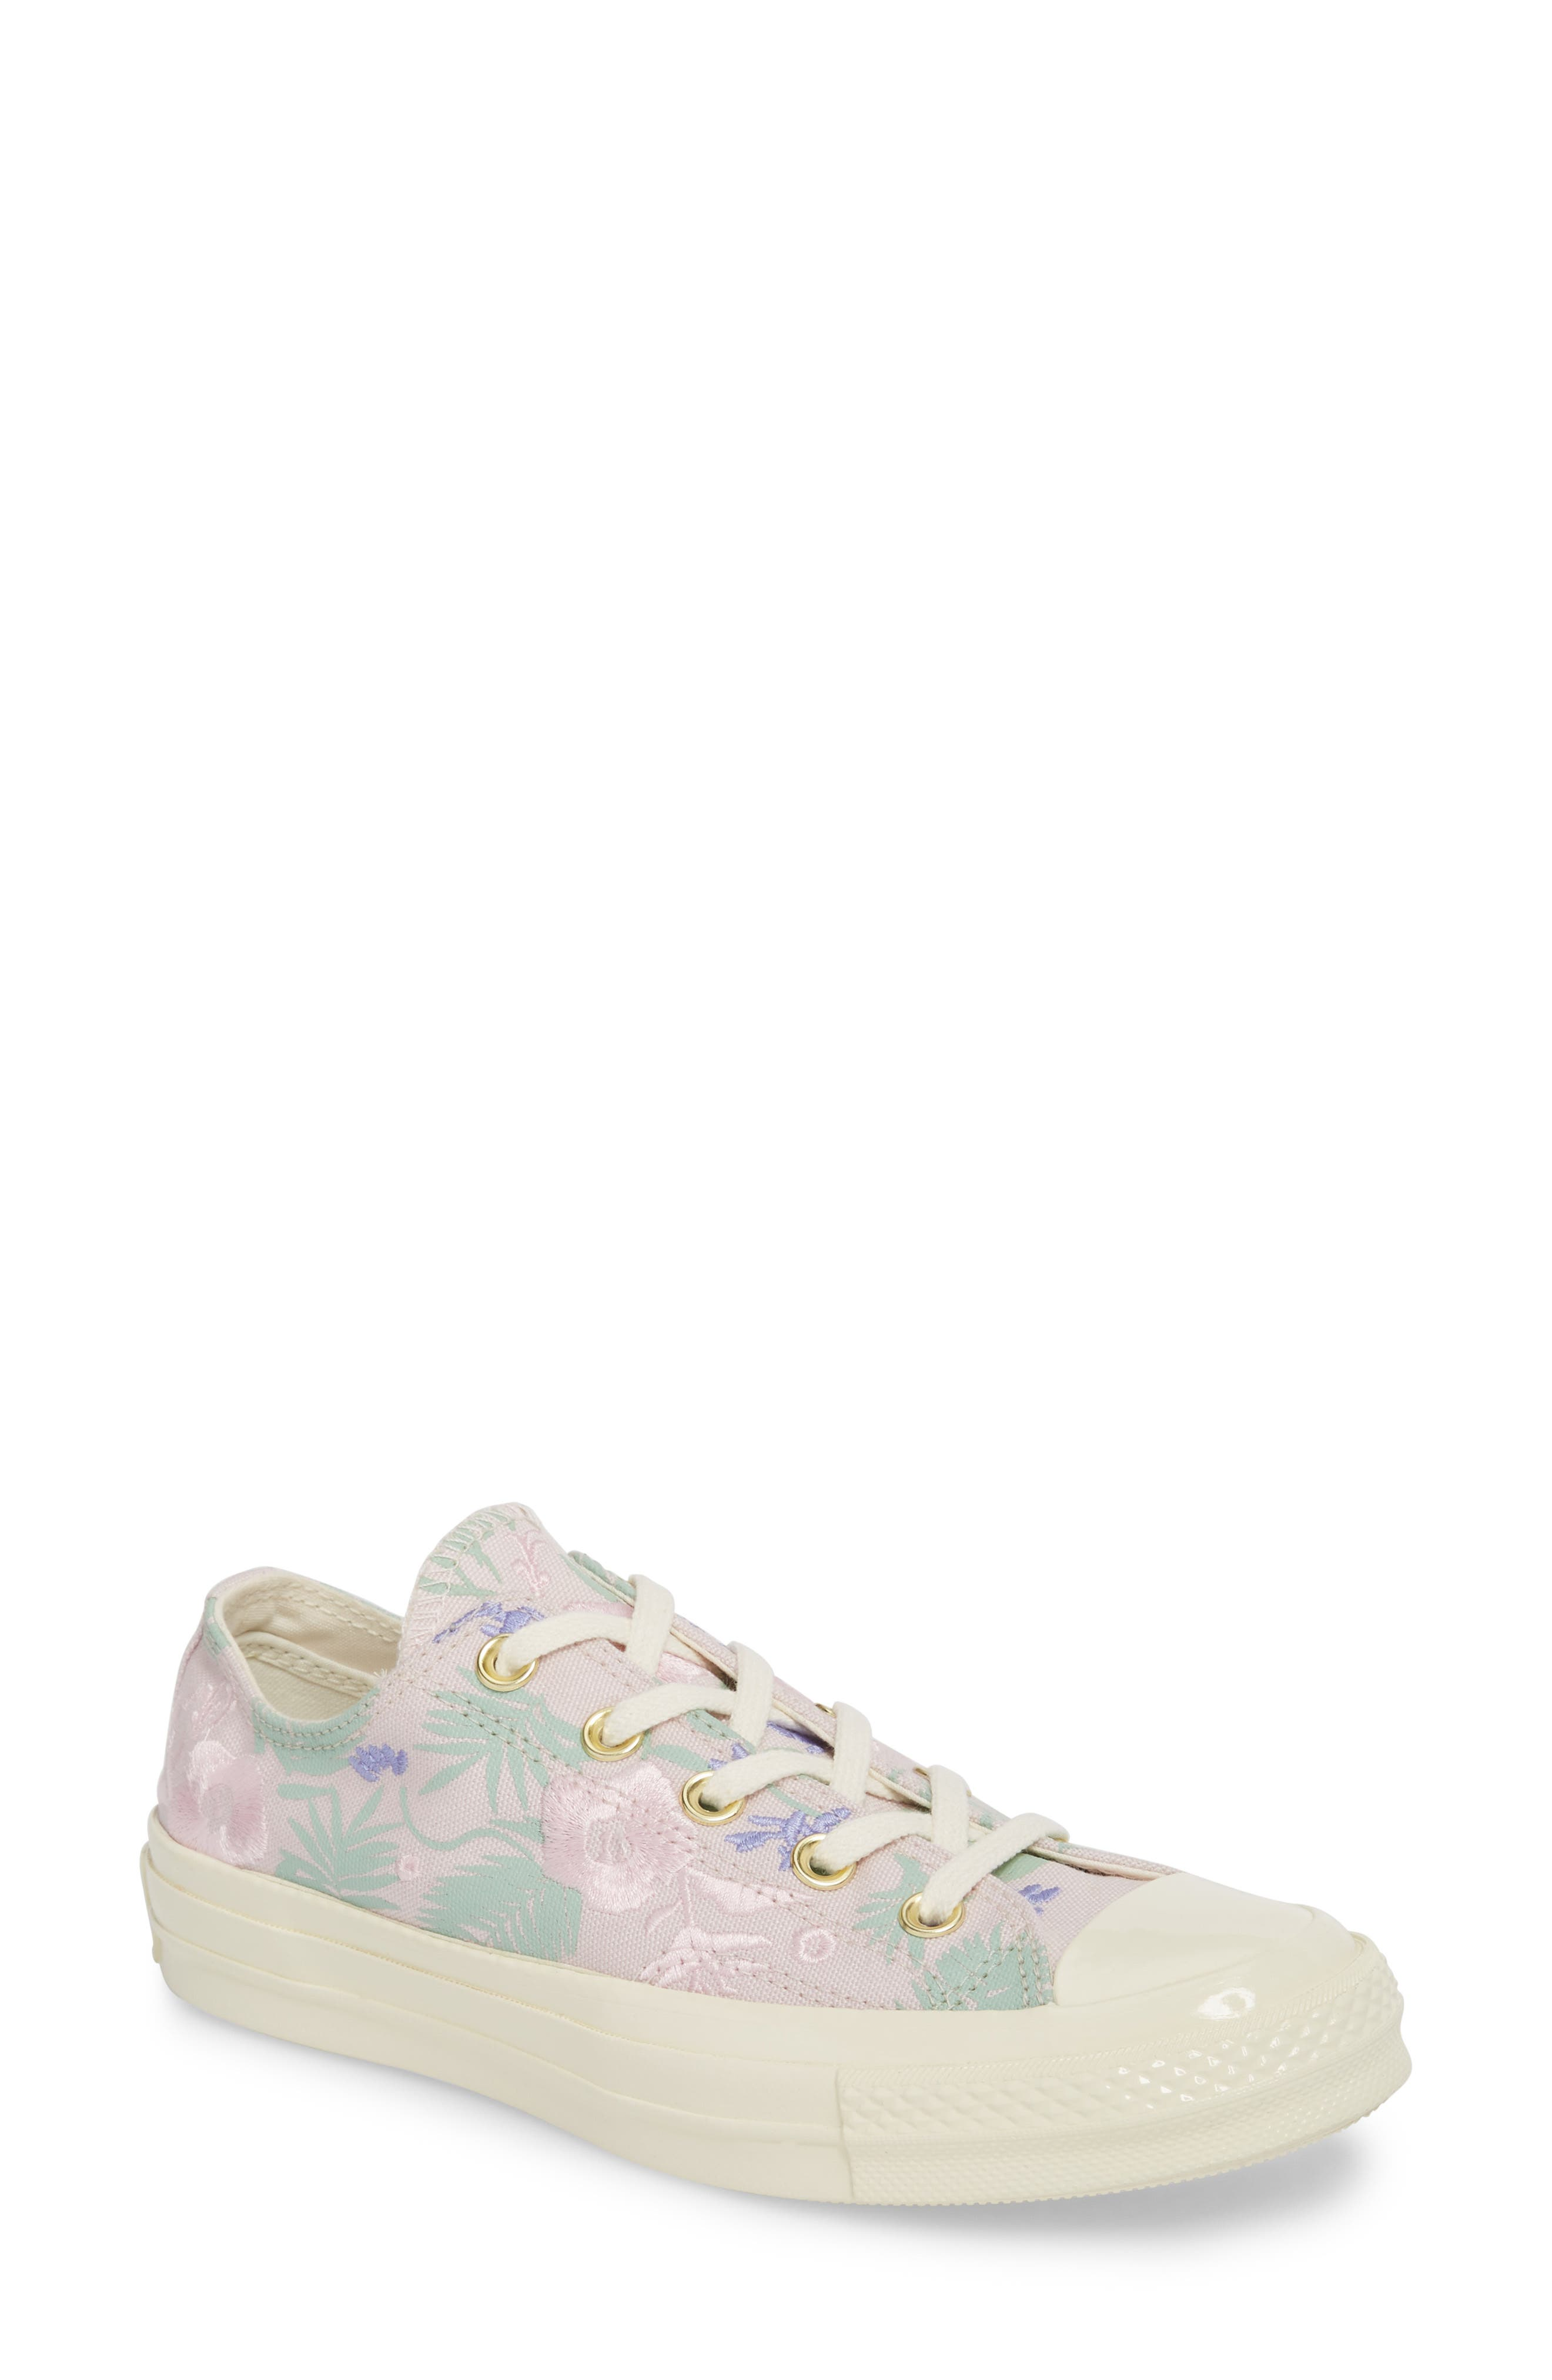 Chuck Taylor<sup>®</sup> All Star<sup>®</sup> 70 Palm Print Low Top Sneaker,                             Main thumbnail 1, color,                             658